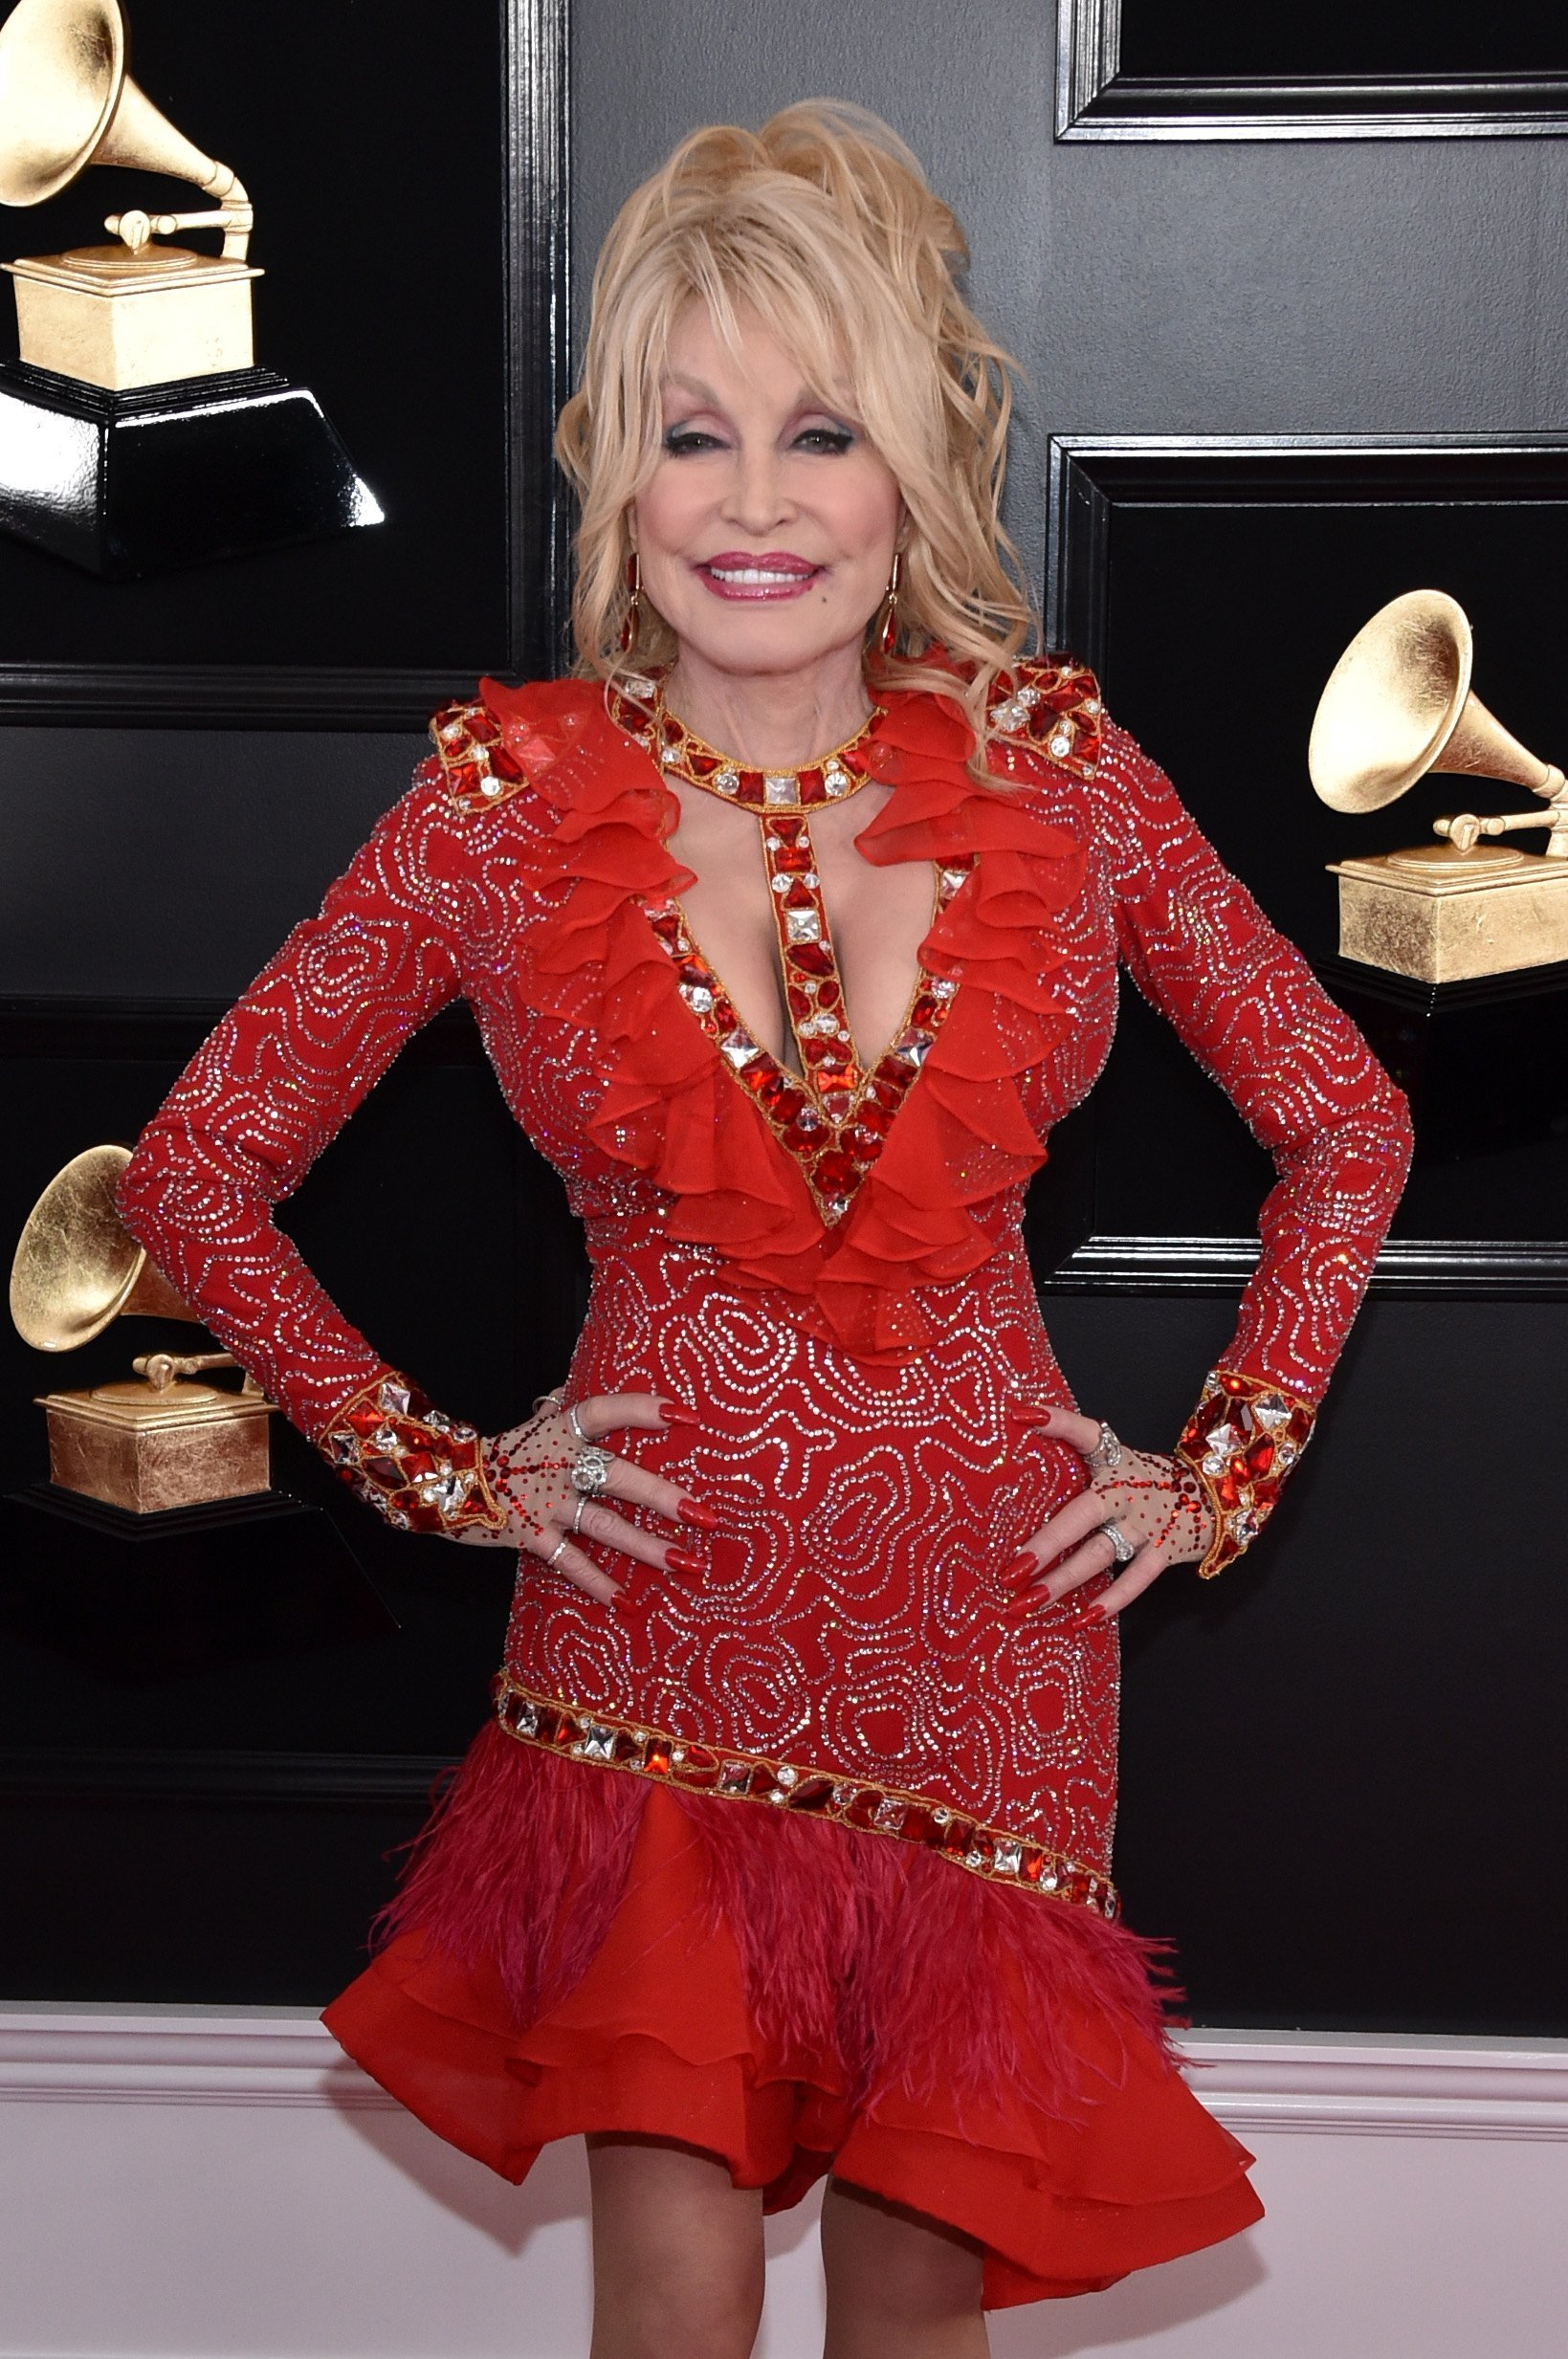 Dolly Parton attends the 61st Annual GRAMMY Awards at Staples Center on February 10, 2019, in Los Angeles, California | Photo: Getty Images